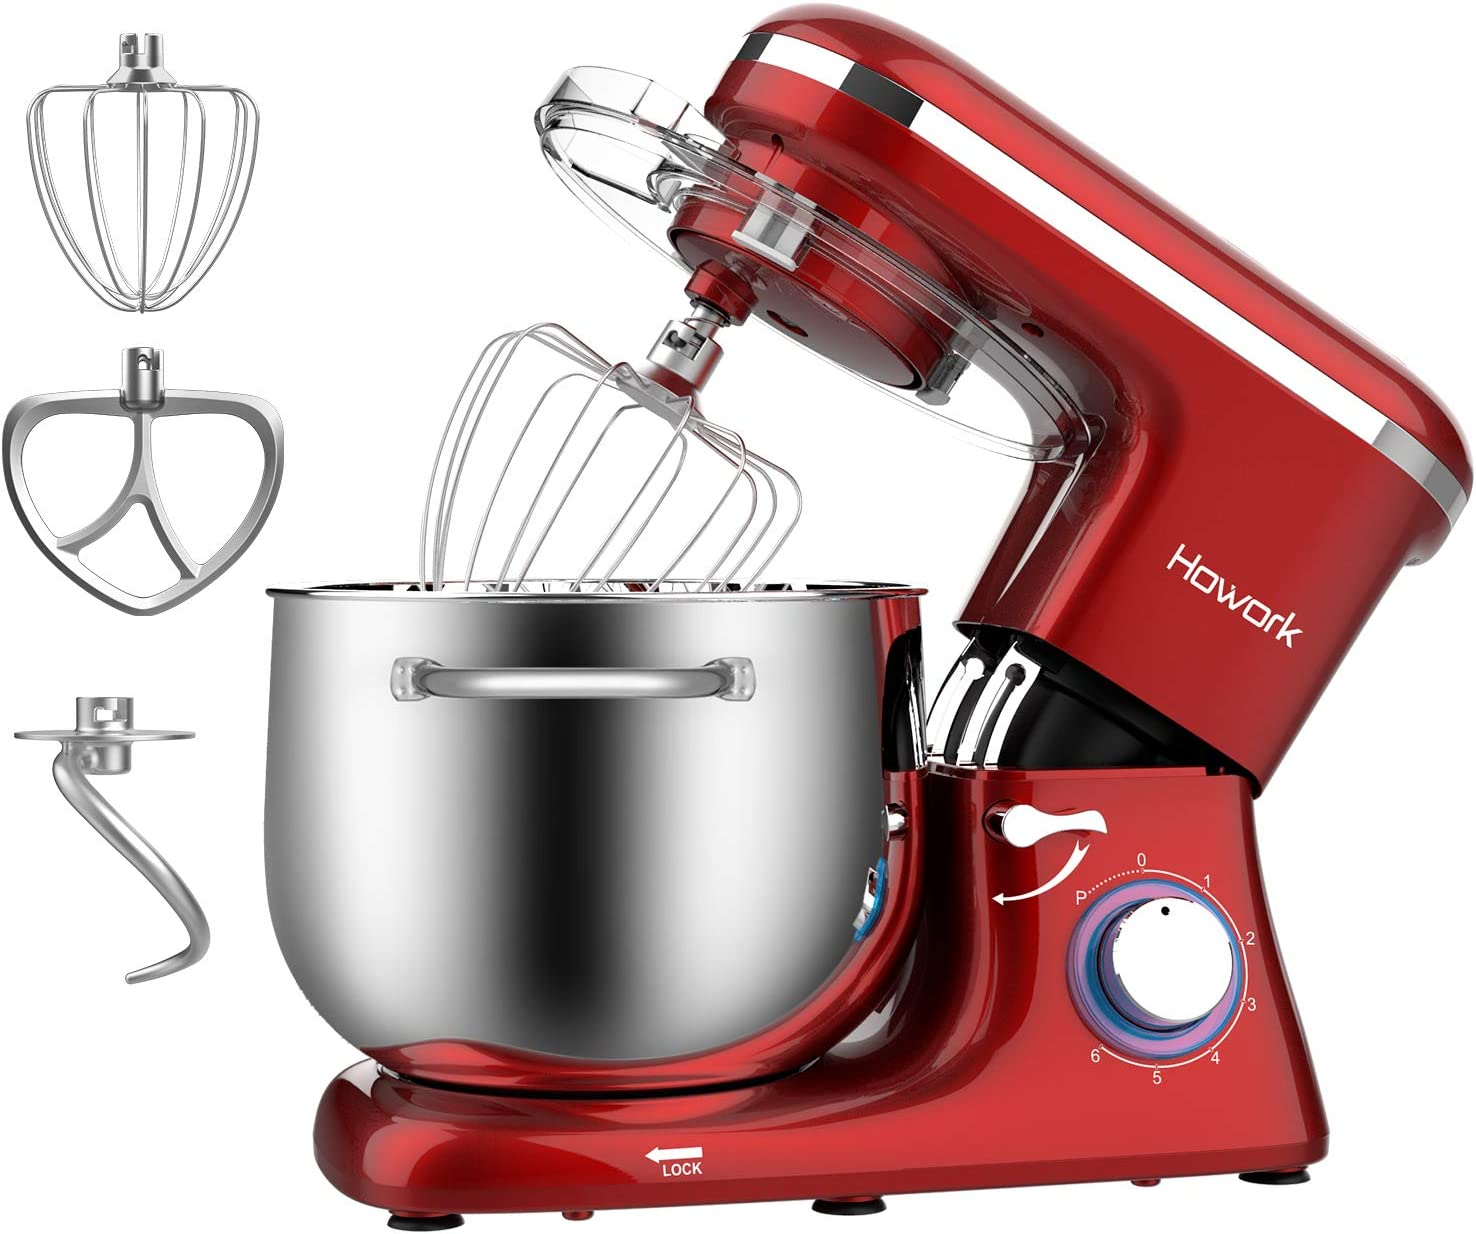 HOWORK Stand Mixer, 8.45 QT Bowl 660W Food Mixer, Multi Functional Kitchen Electric Mixer With Dough Hook, Whisk, Beater (8.45 QT, Red)